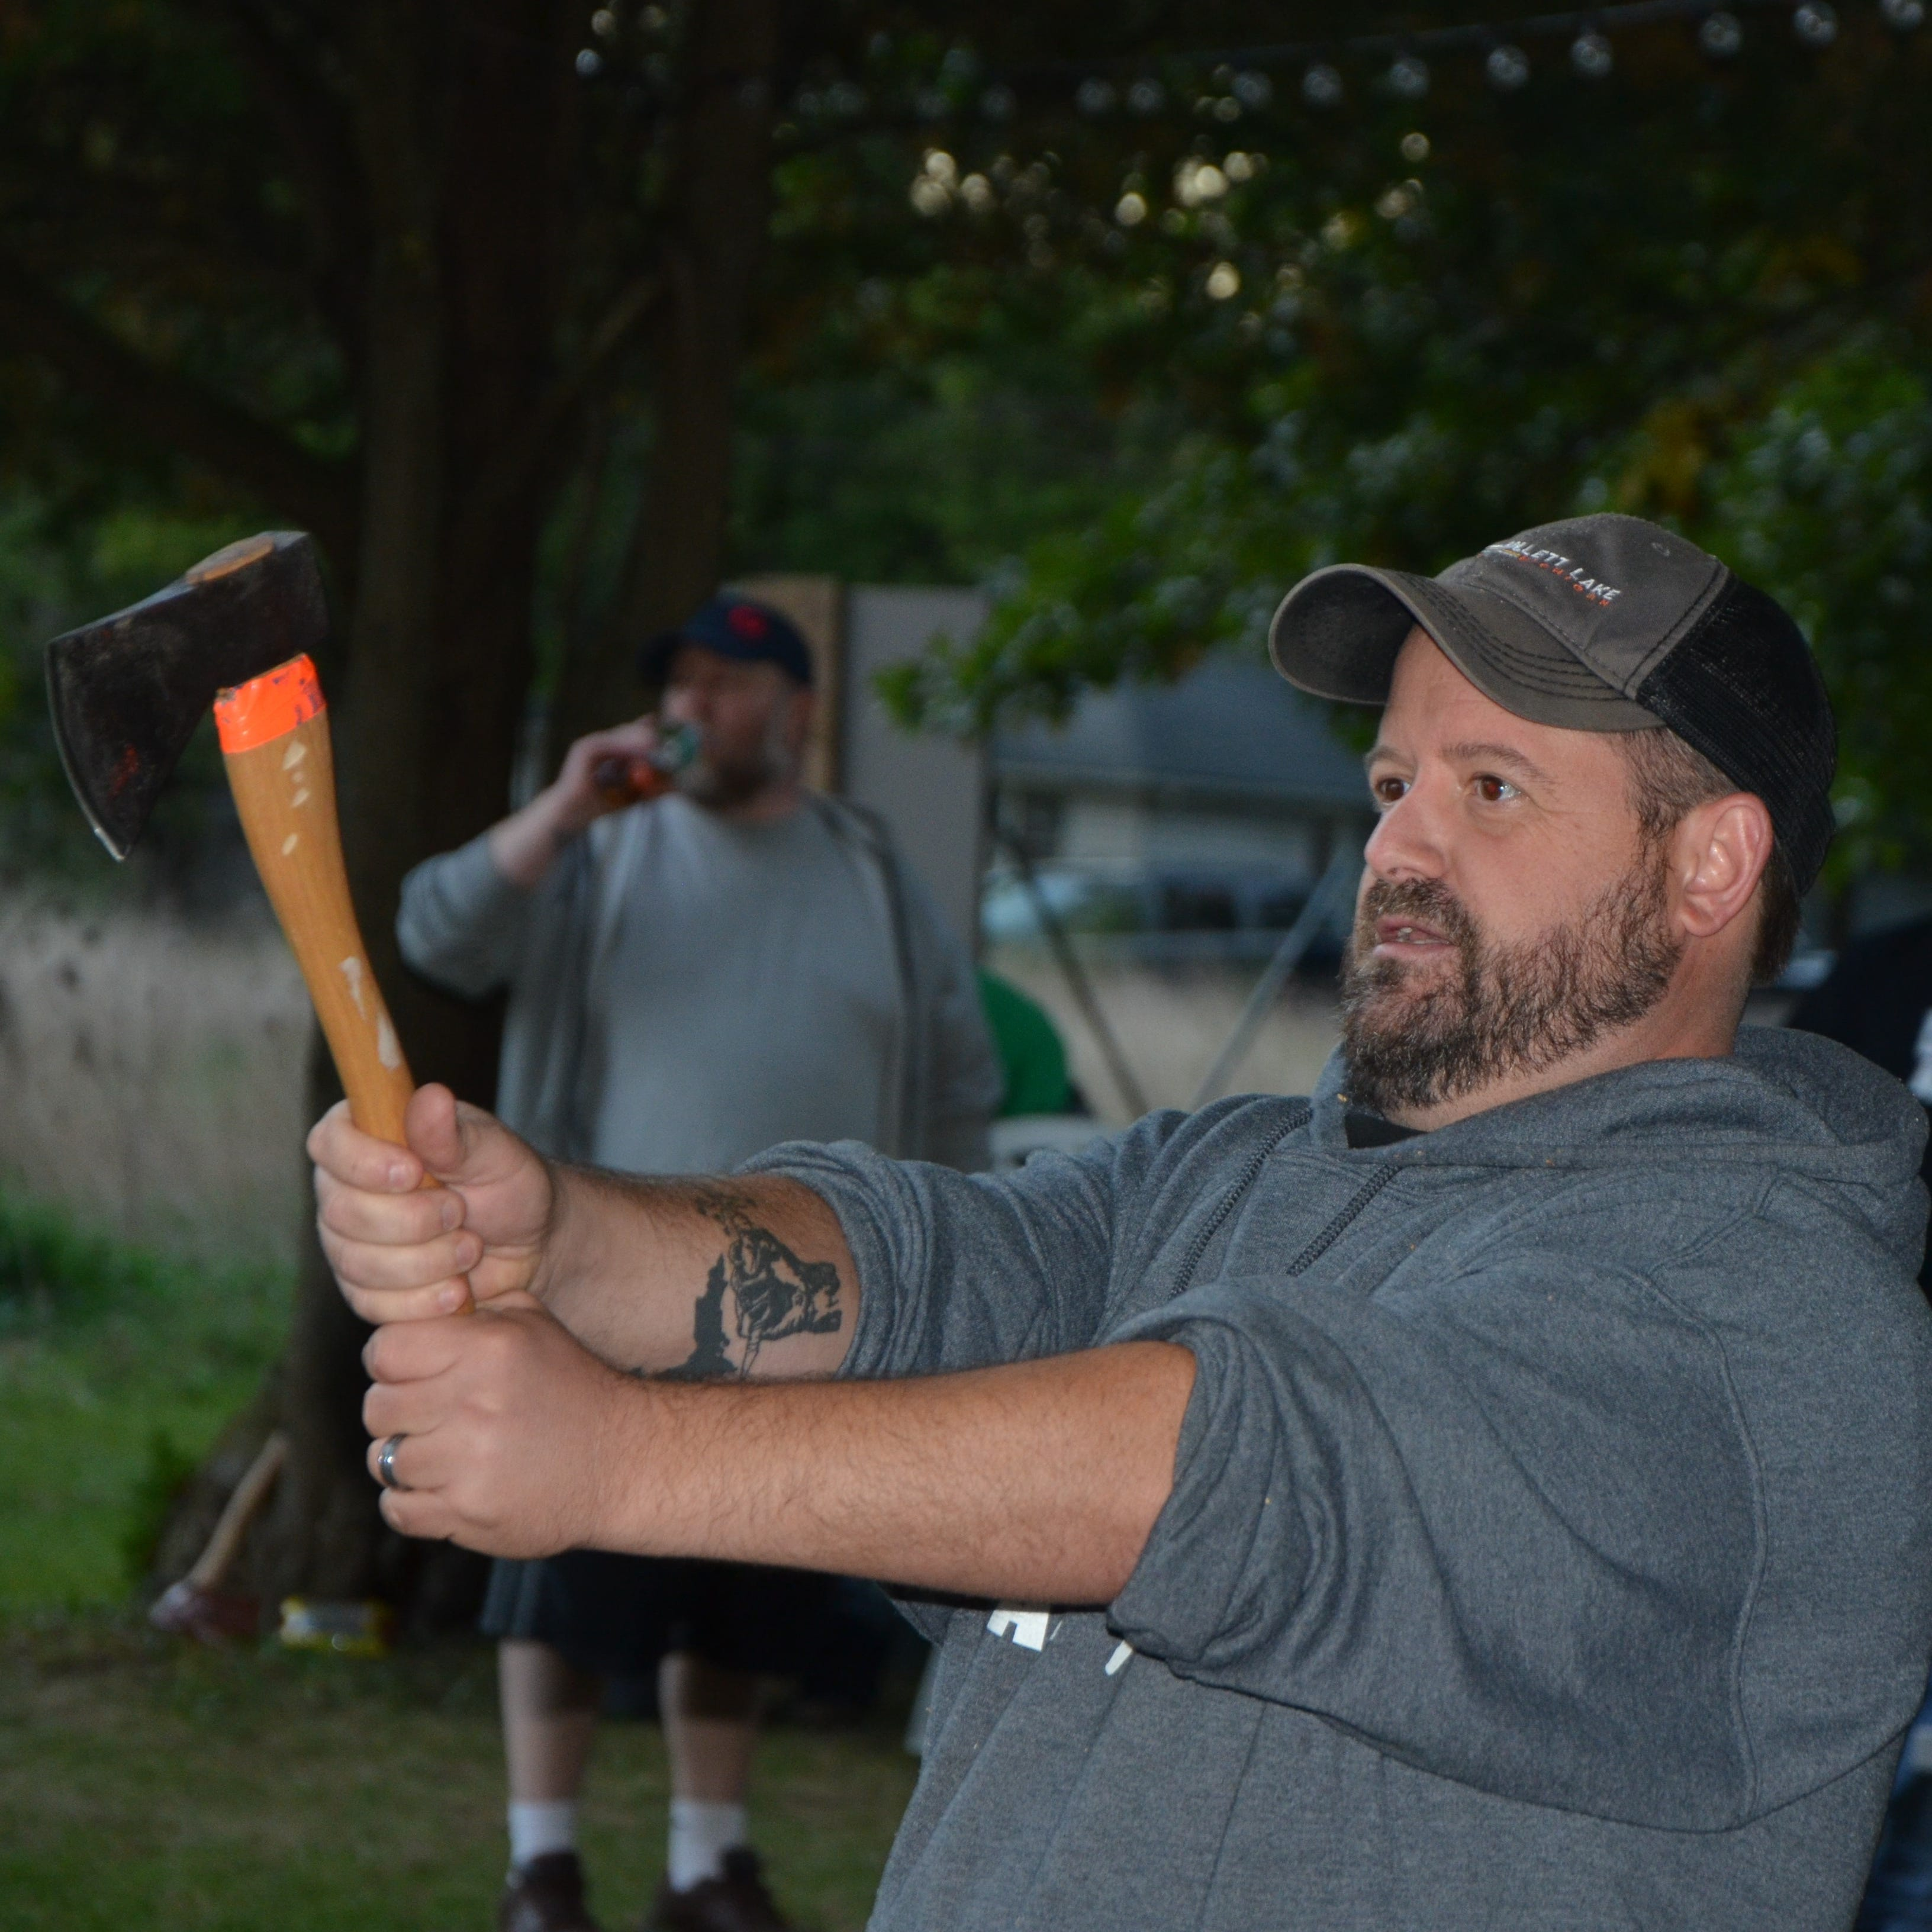 Ax-throwing club takes aim in Battle Creek